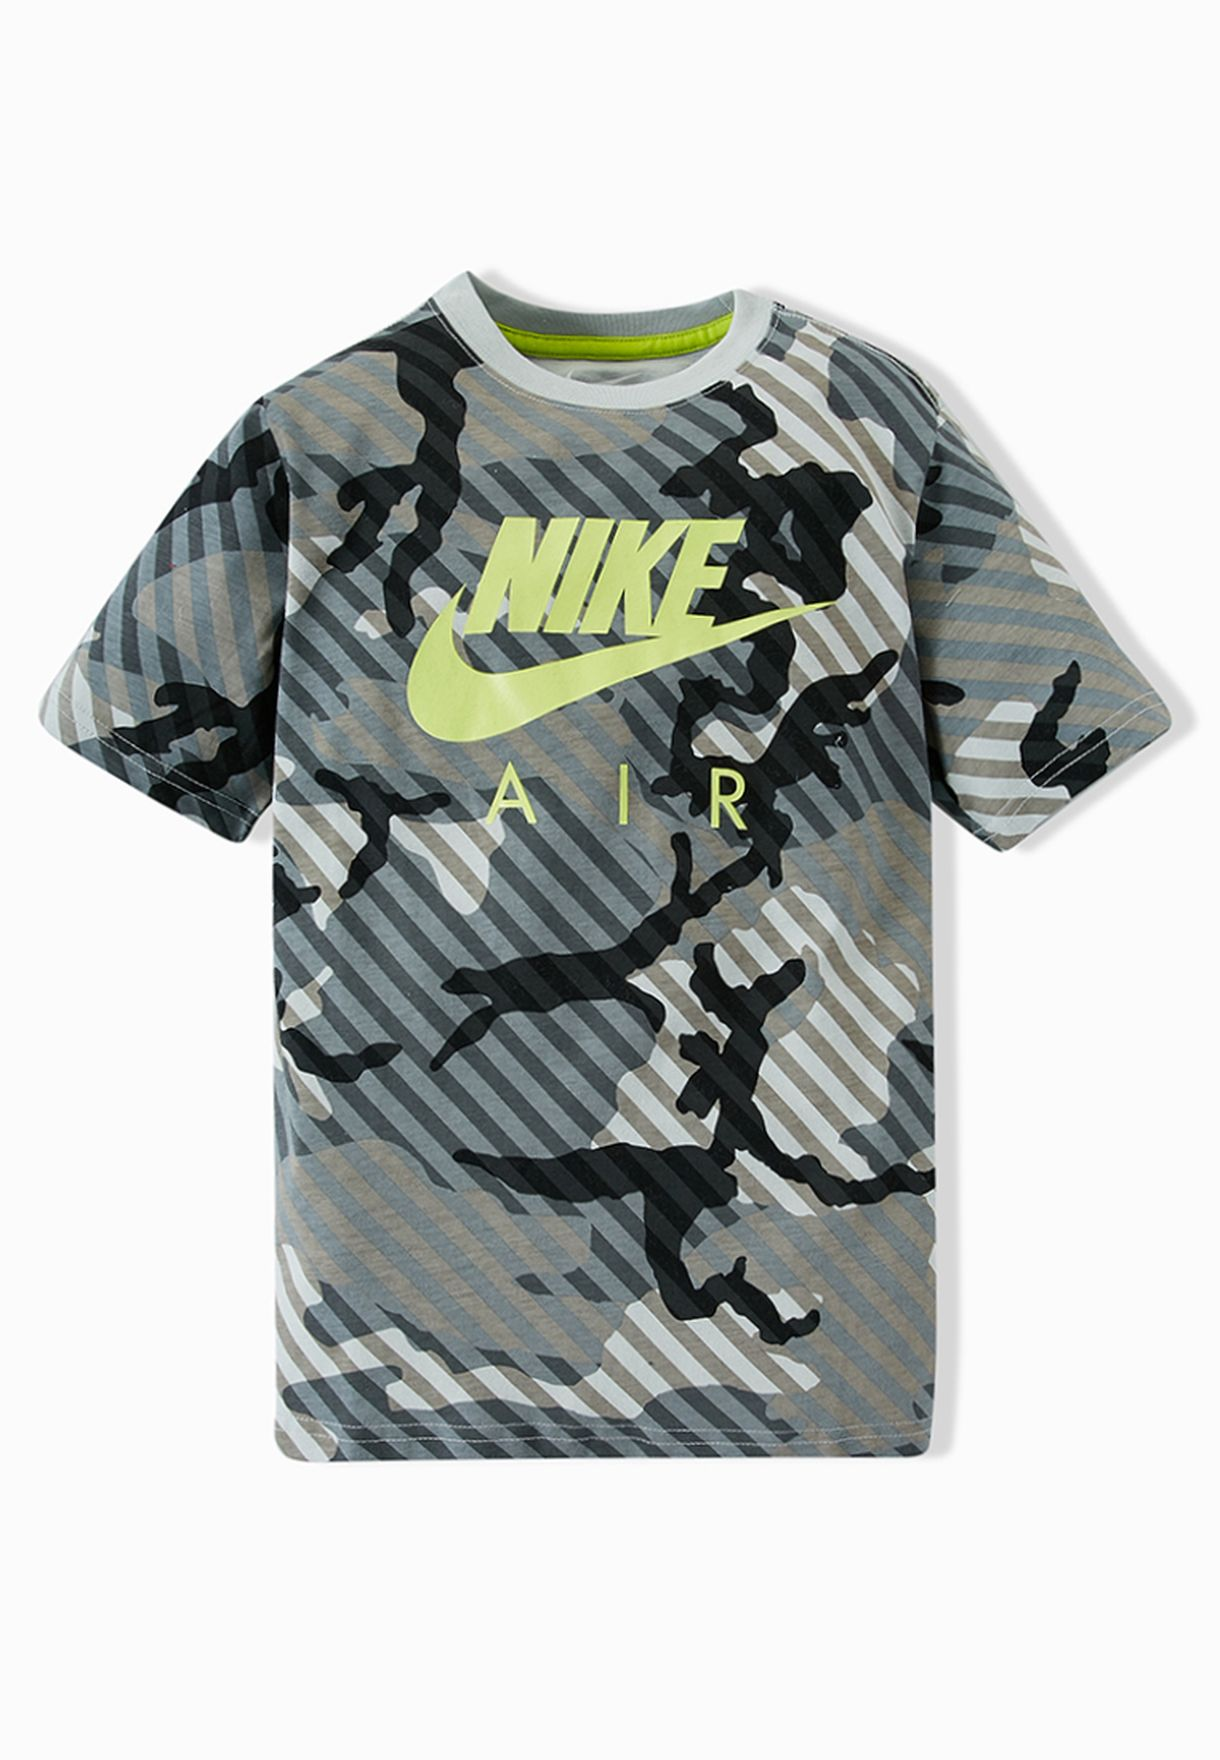 0de4713f1 Shop Nike prints Youth Camouflage T-Shirt 641813-065 for Kids in UAE ...